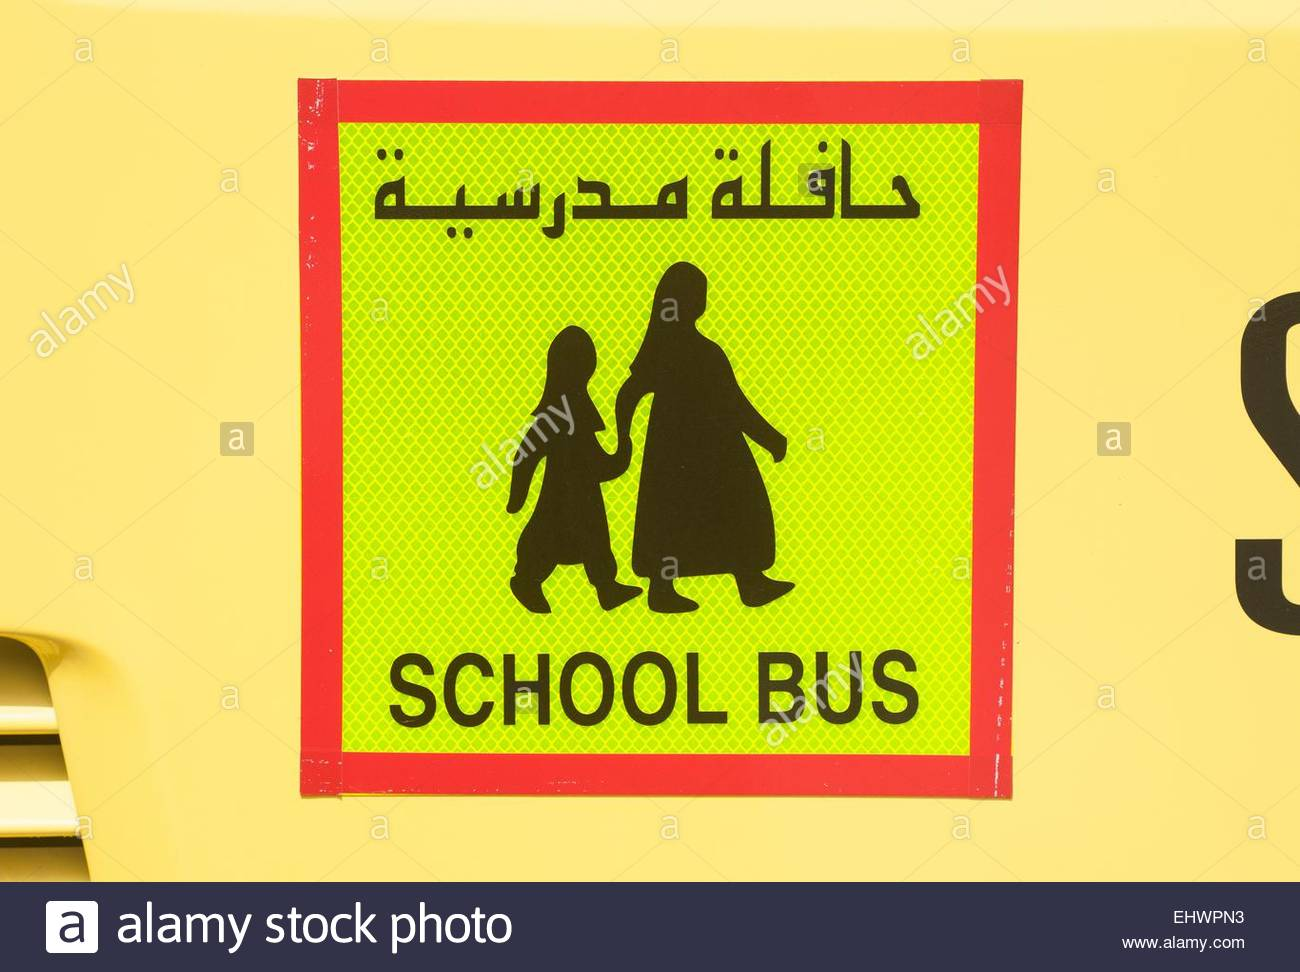 Dubai UAE School bus sign in English and arabic with figures wearing typical Islamic dress. - Stock Image